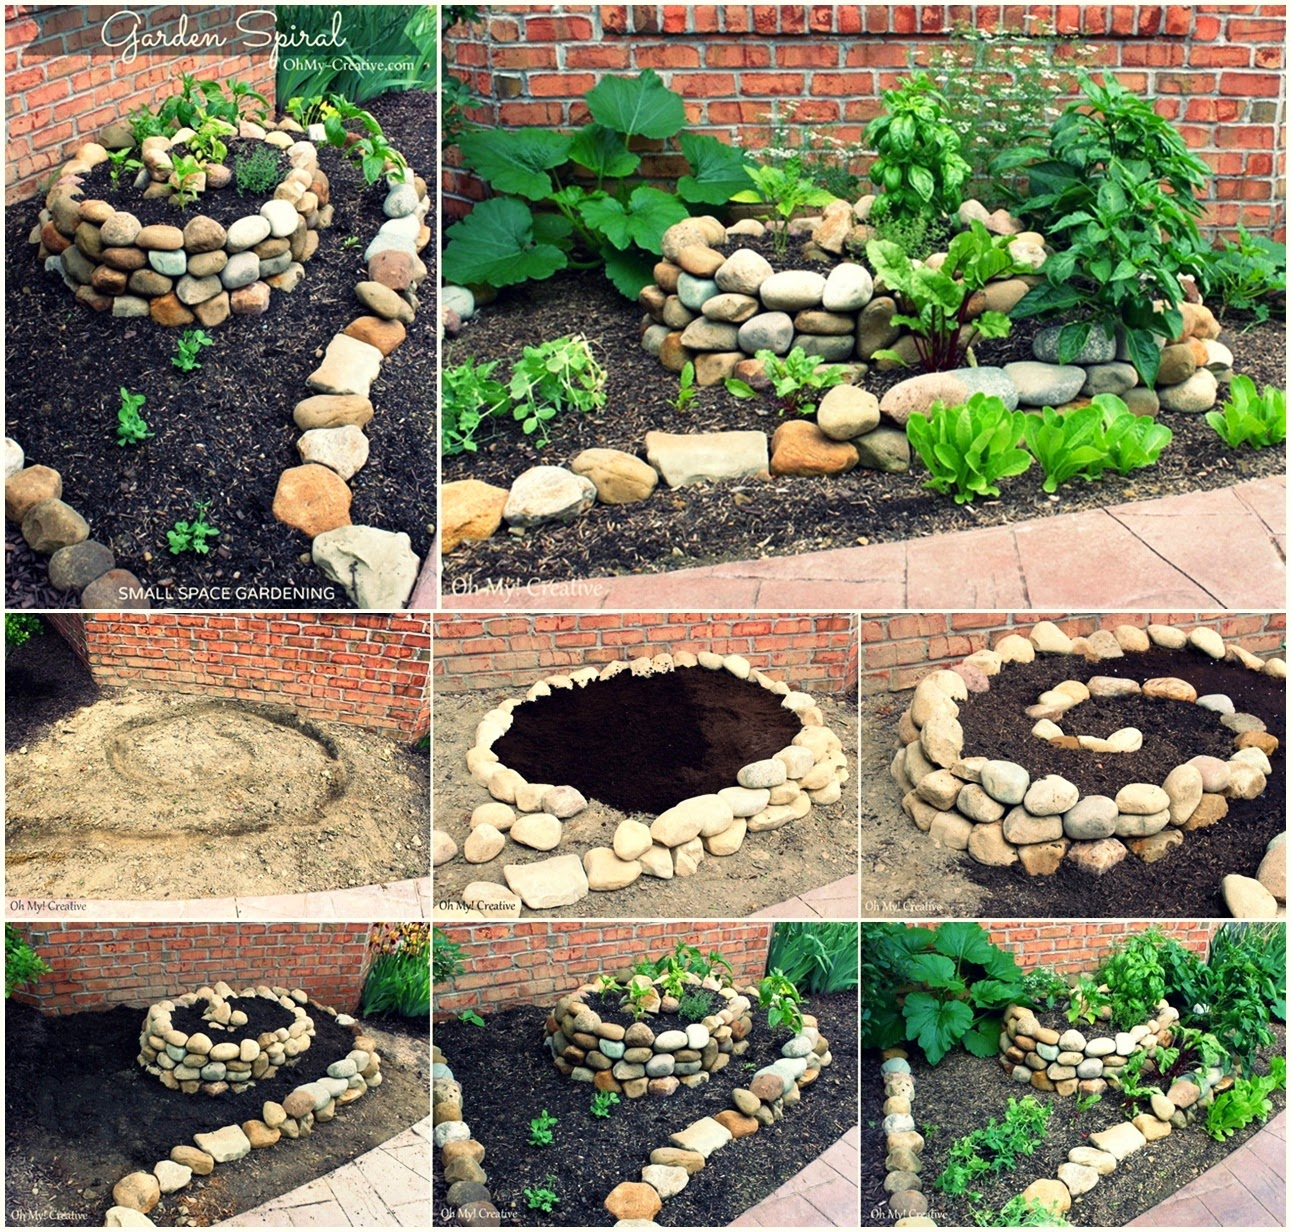 diy create a small vegetable garden using a garden spiral